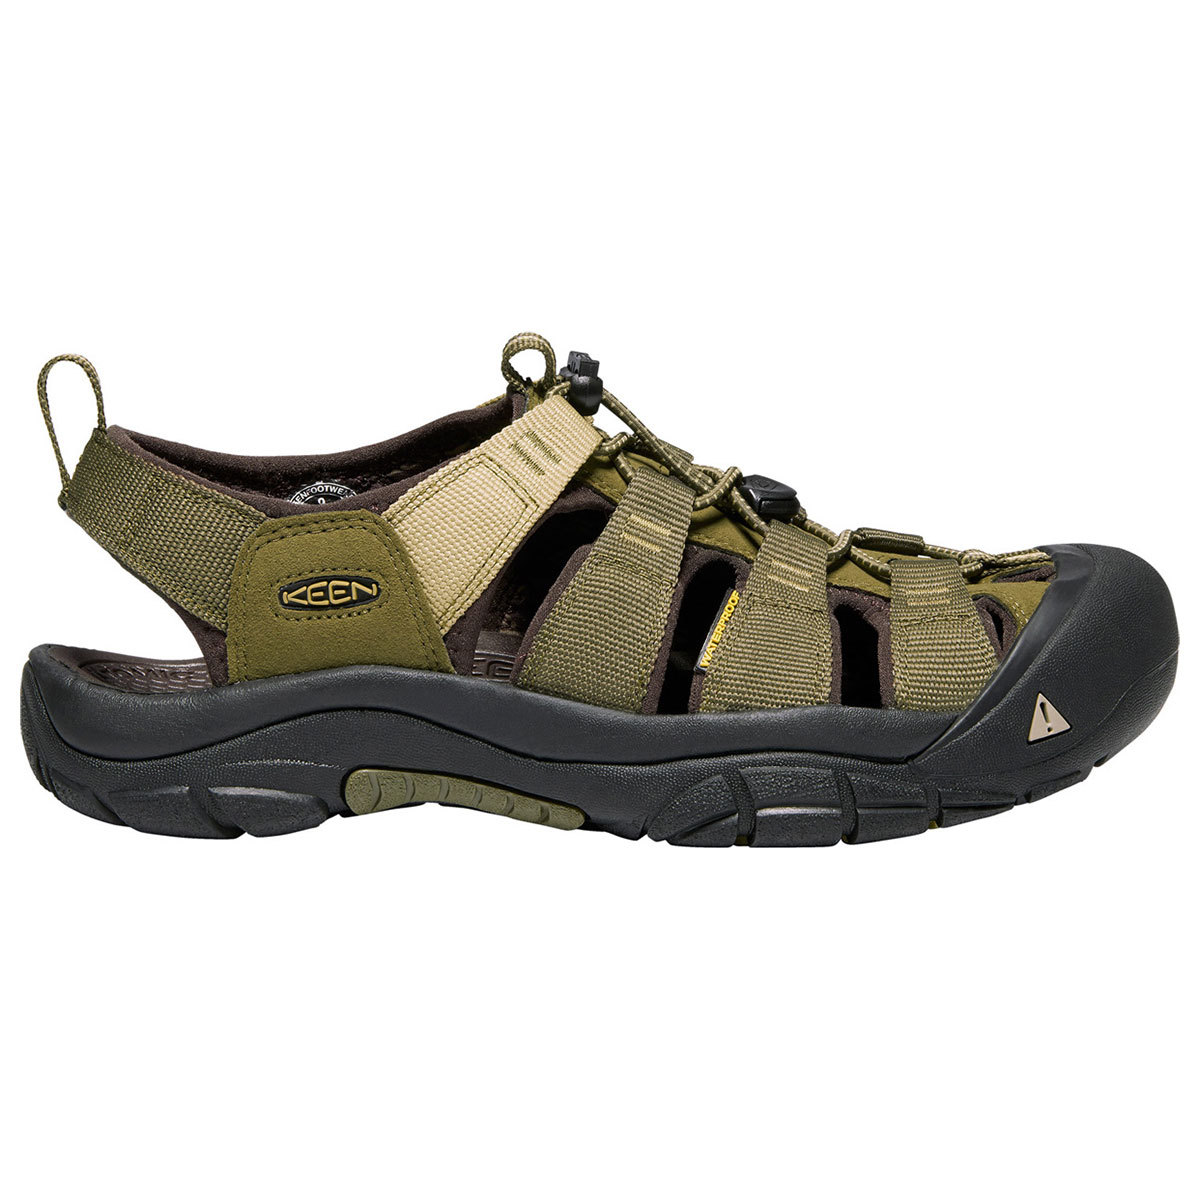 Keen Men's Newport Hydro Sandals - Green, 13